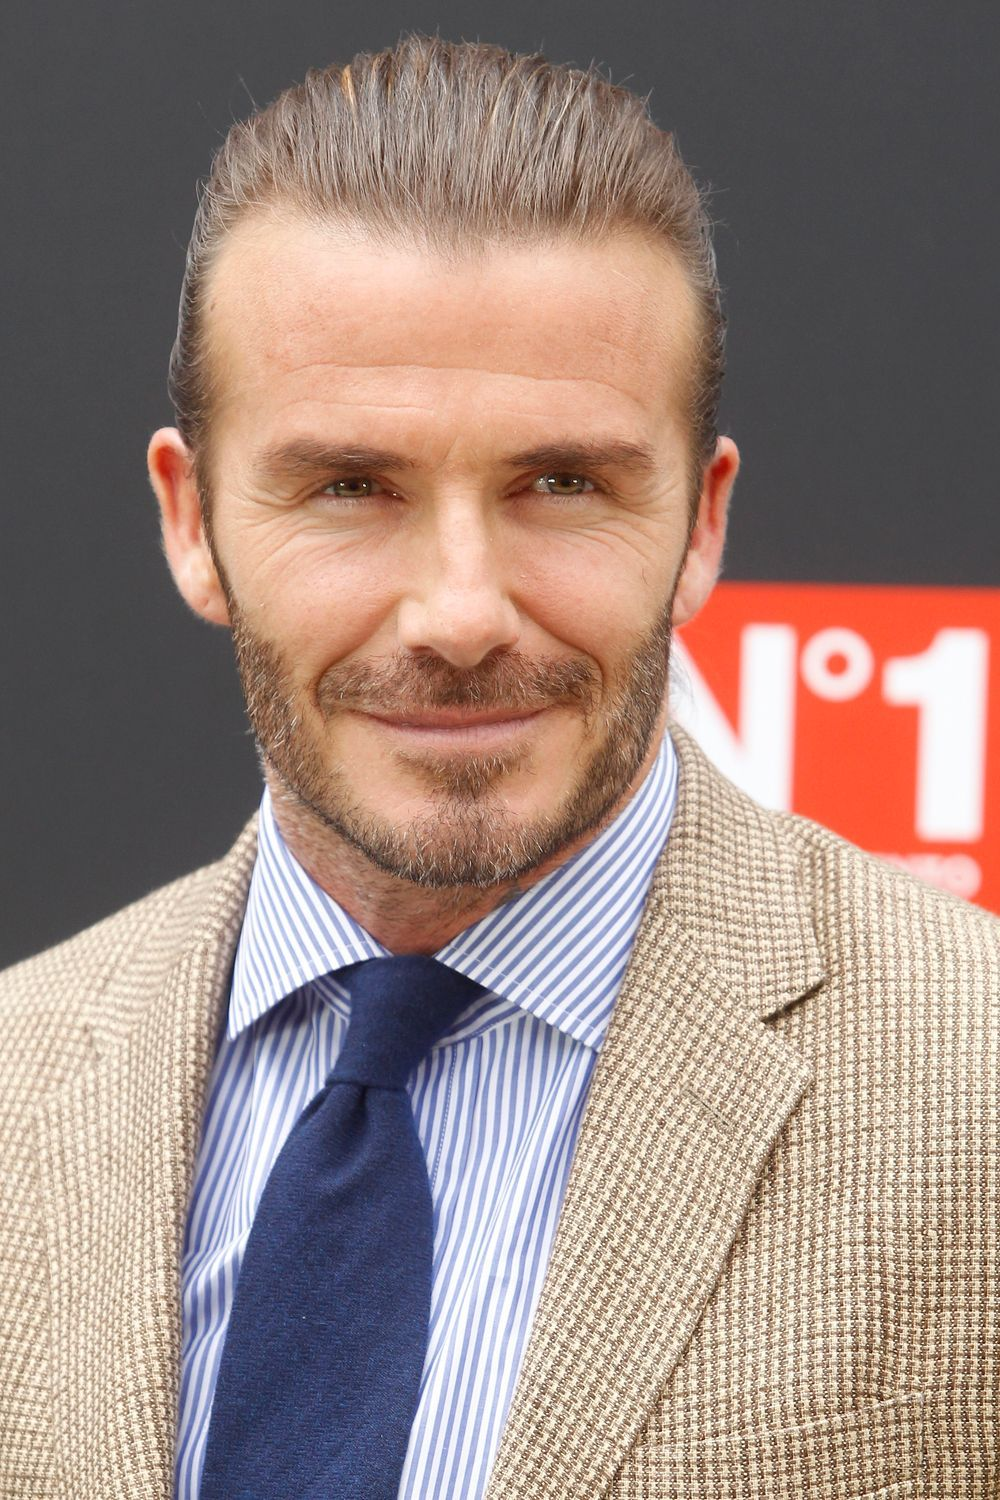 coiffure david beckham david beckham coiffure sexy pour homme tapis rouge with coiffure david. Black Bedroom Furniture Sets. Home Design Ideas